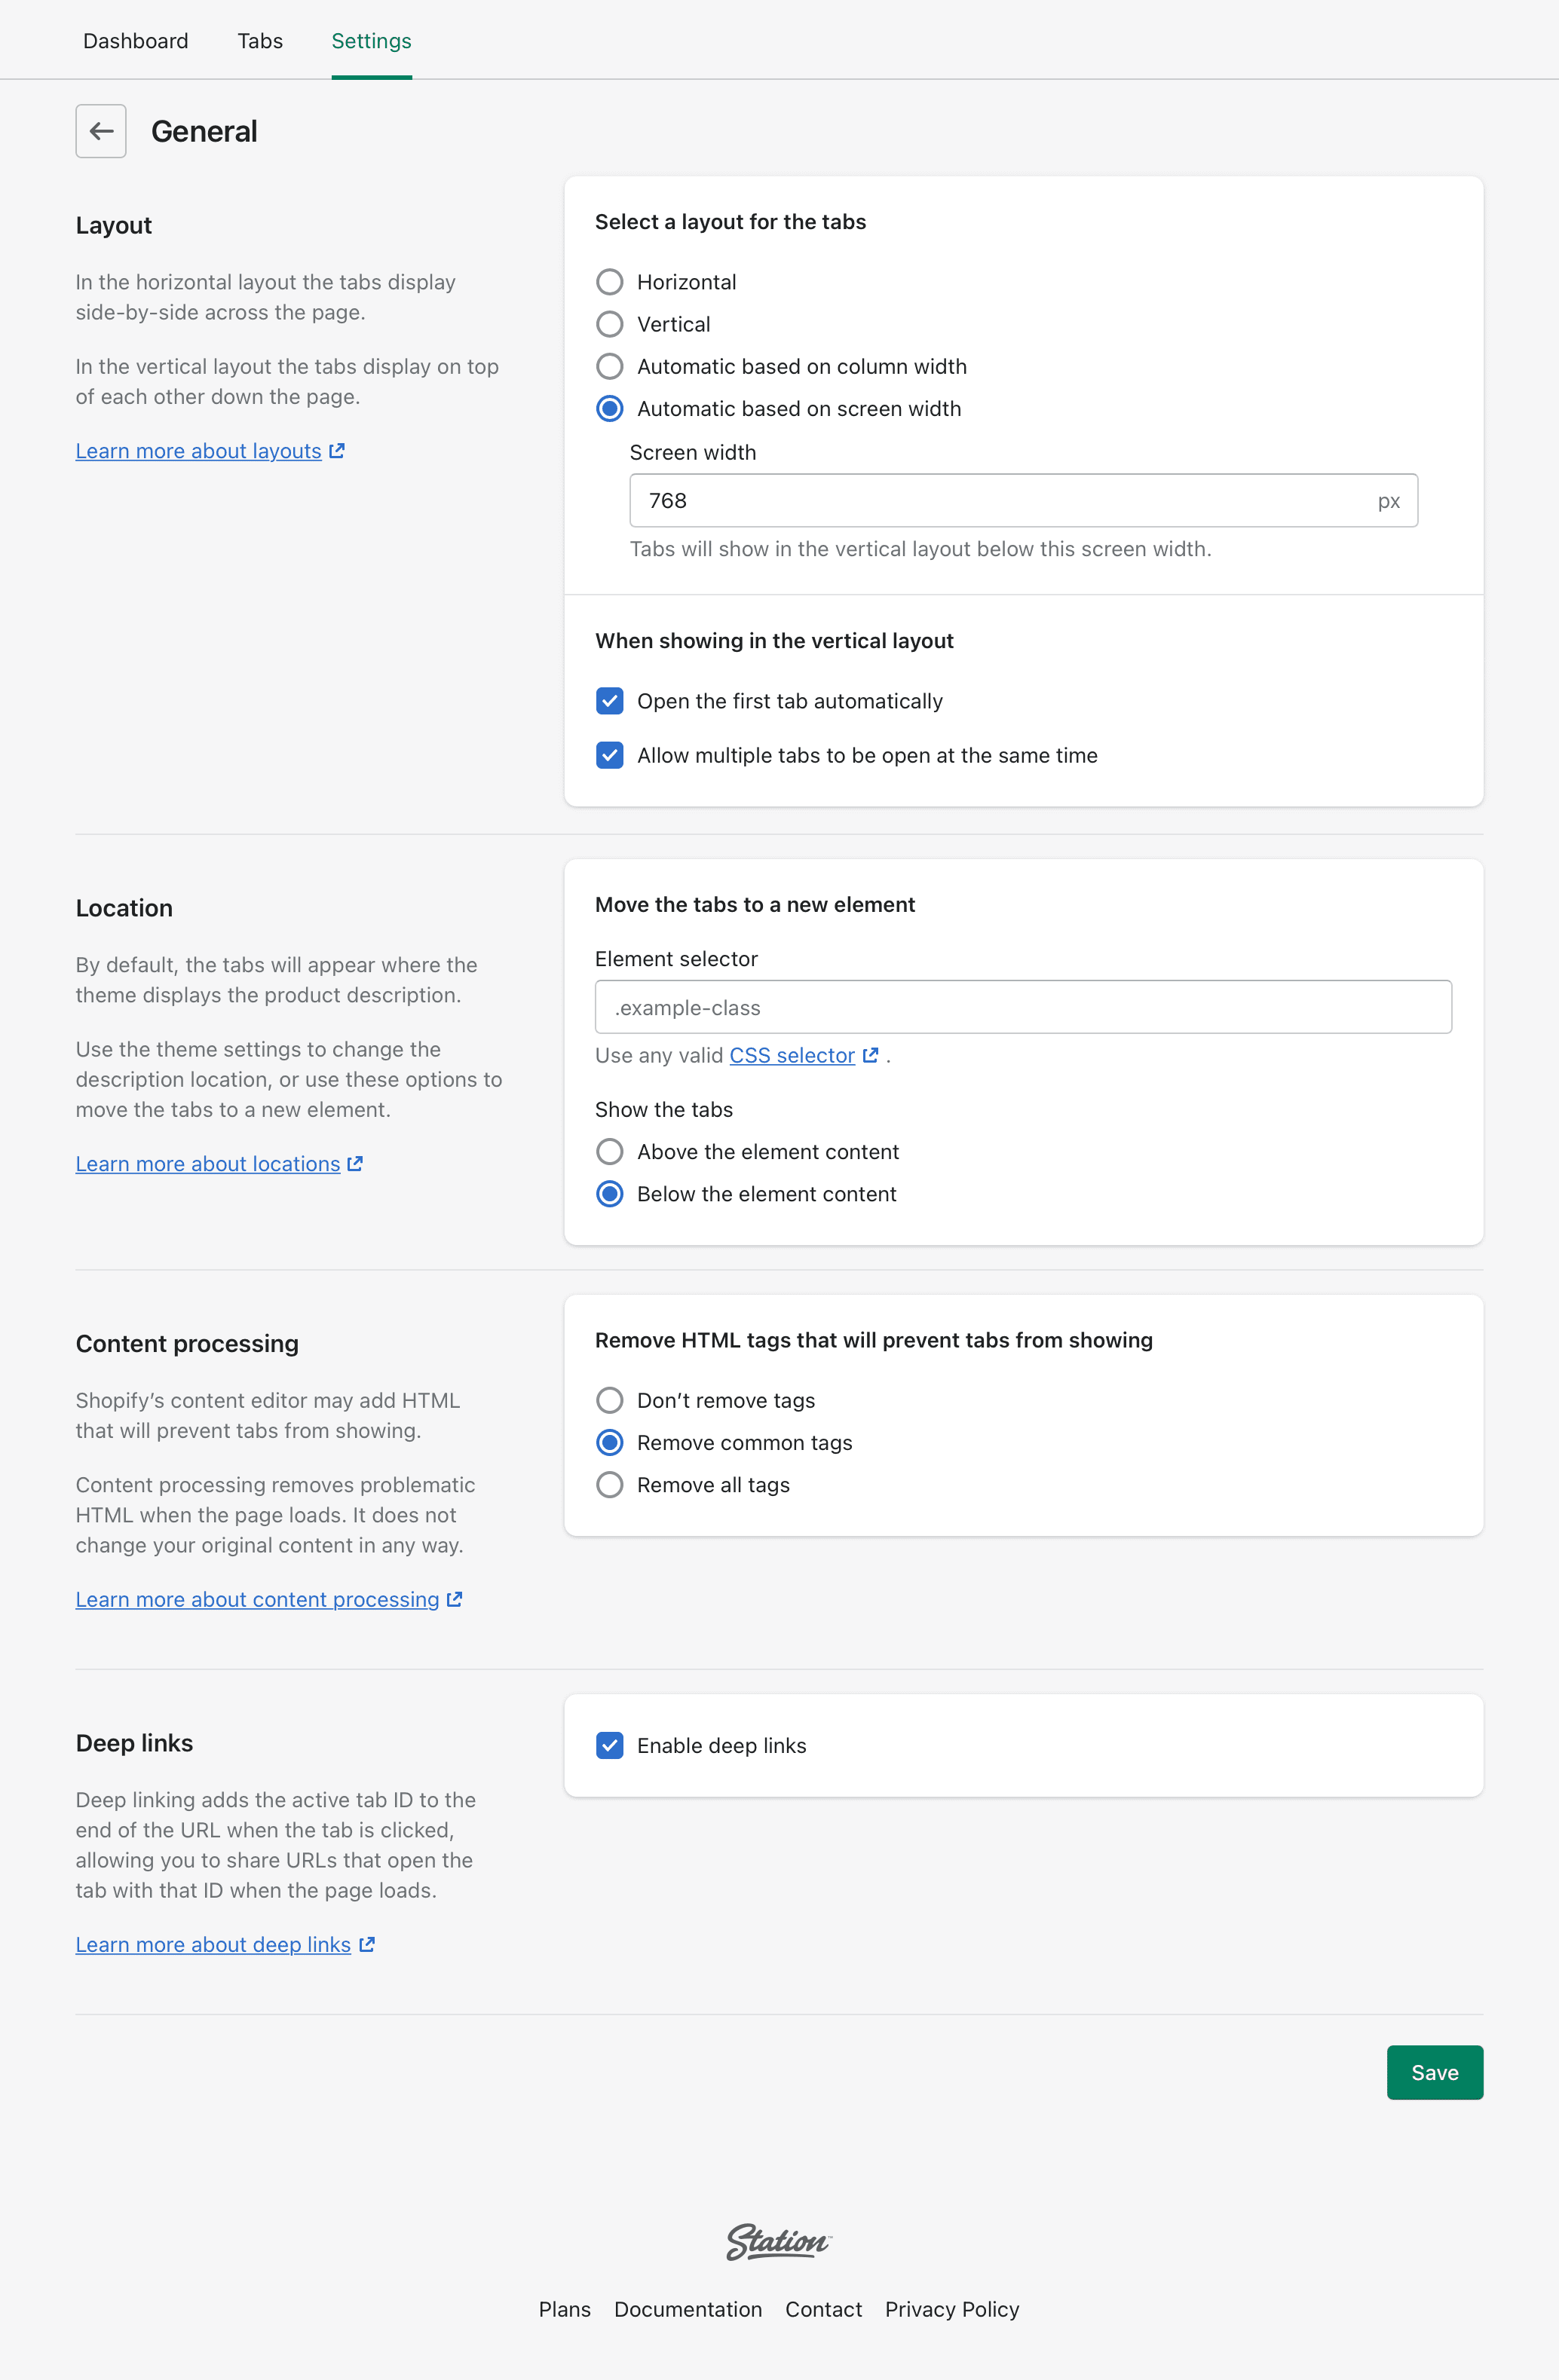 The 'General' settings page